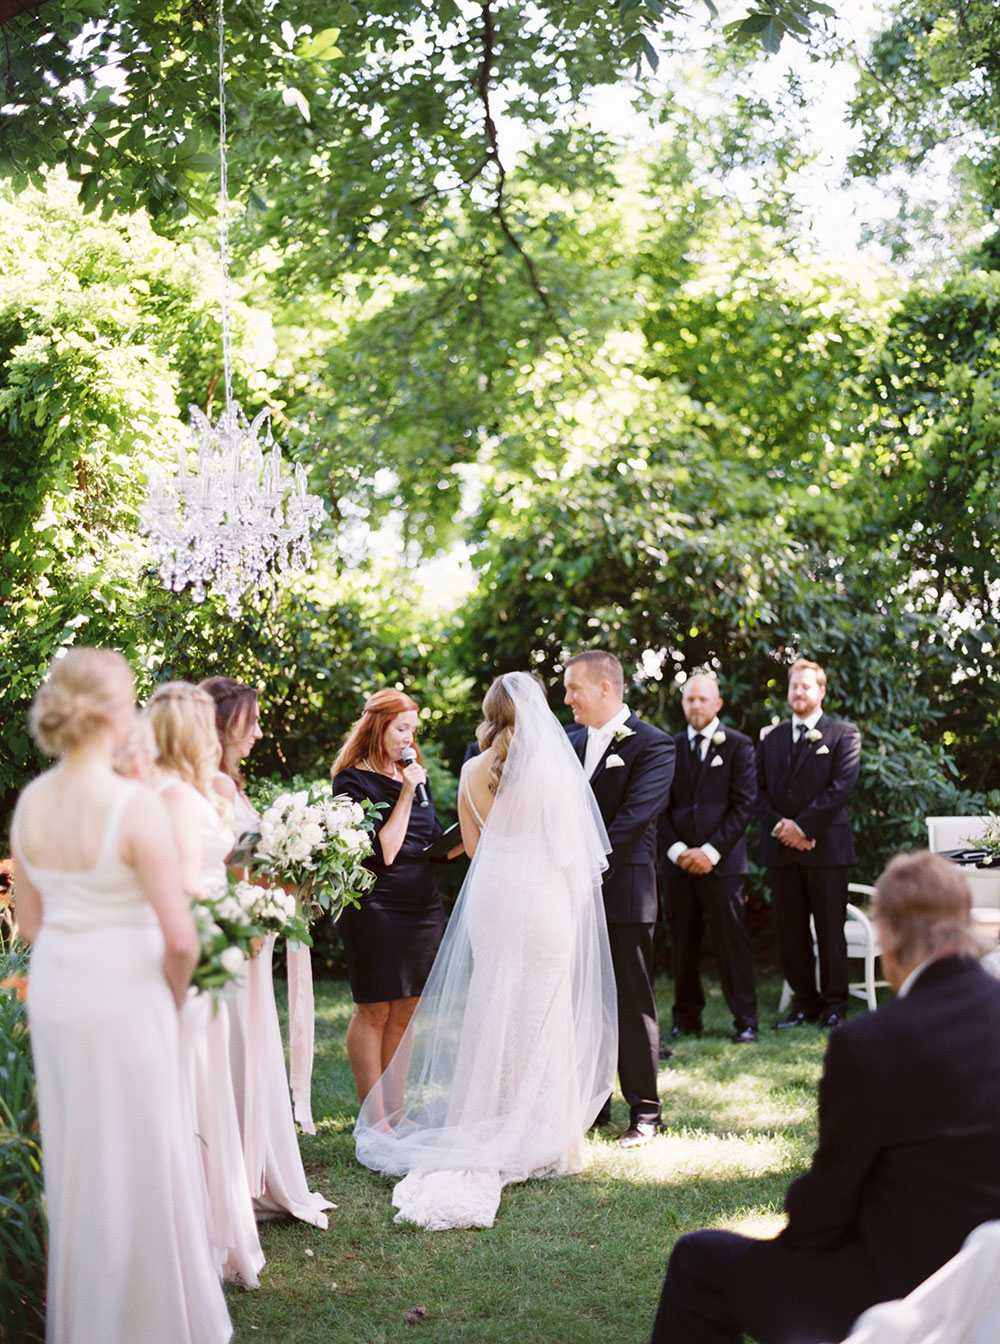 kurtz-orchards-wedding-gracewood-estate-niagara-on-the-lake-photo-by-katie-nicolle-photography-0025.JPG